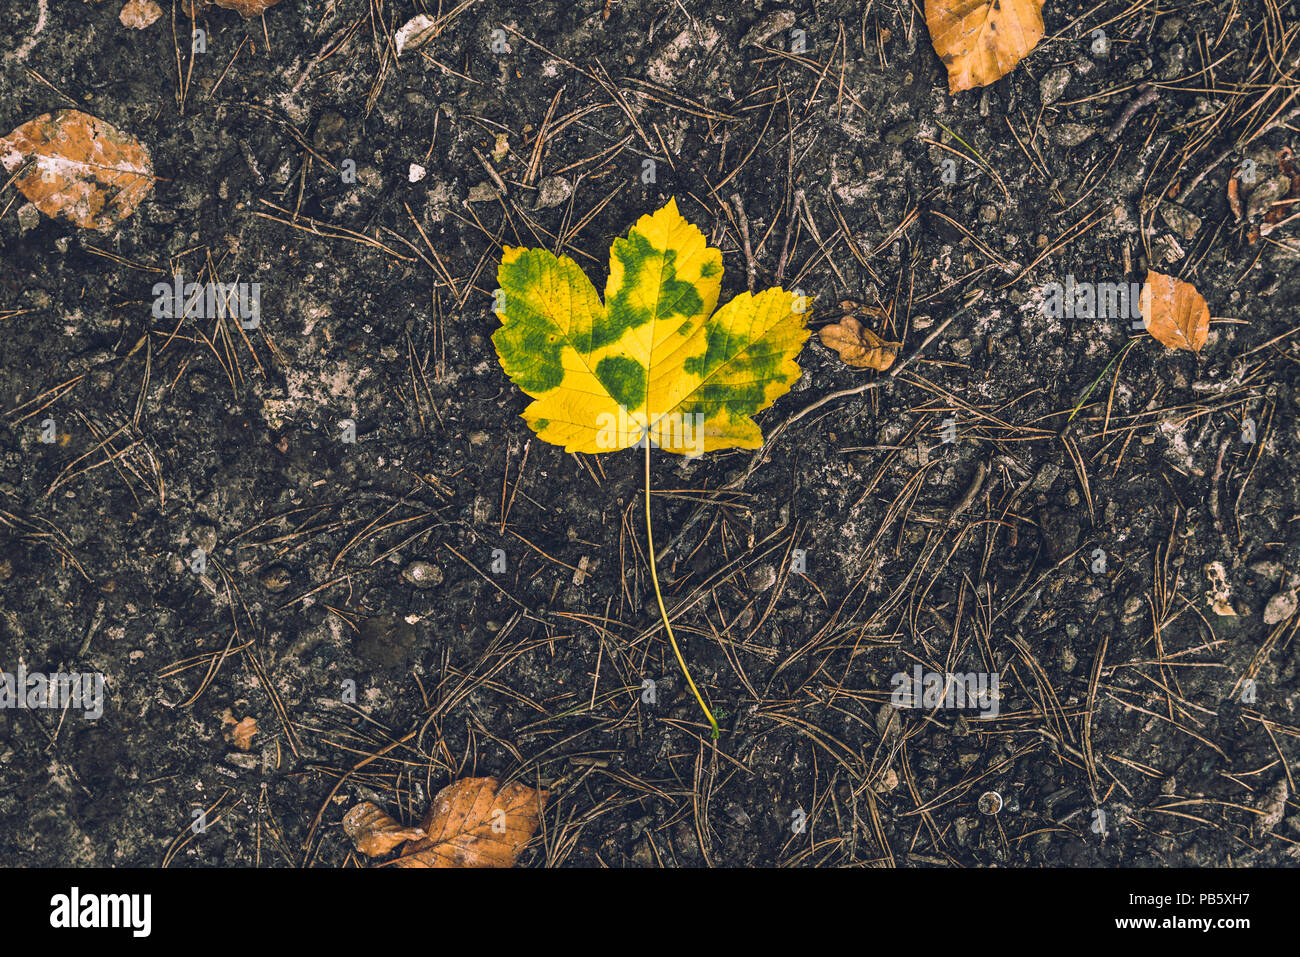 autumn leaf from above against brown soil ground taken from above as